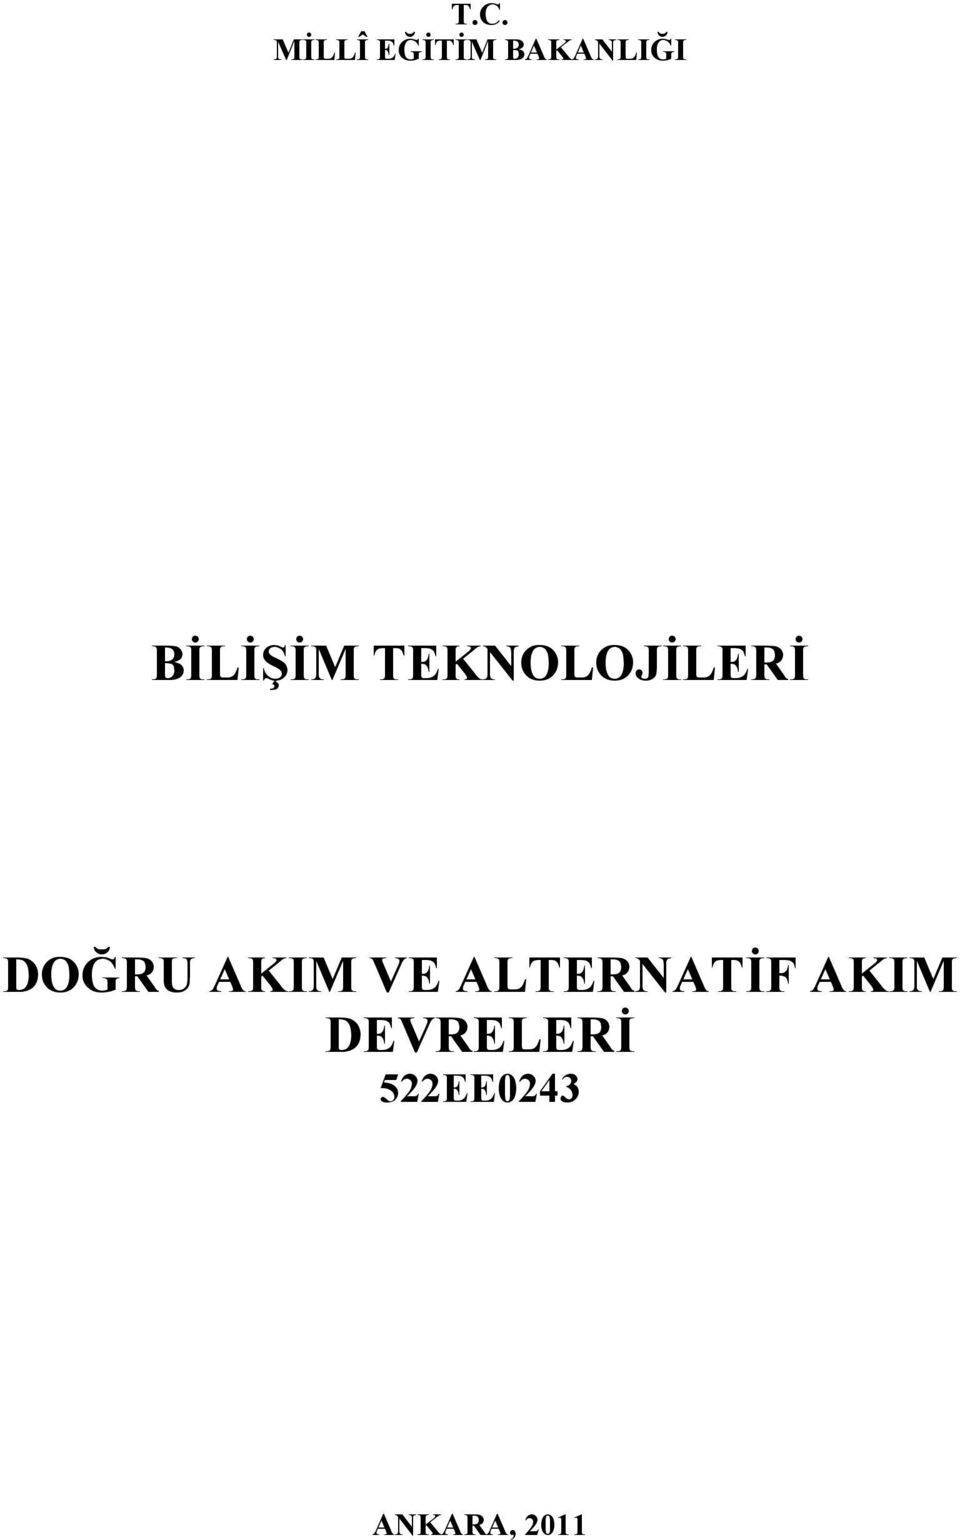 AKIM VE ALTERNATİF AKIM